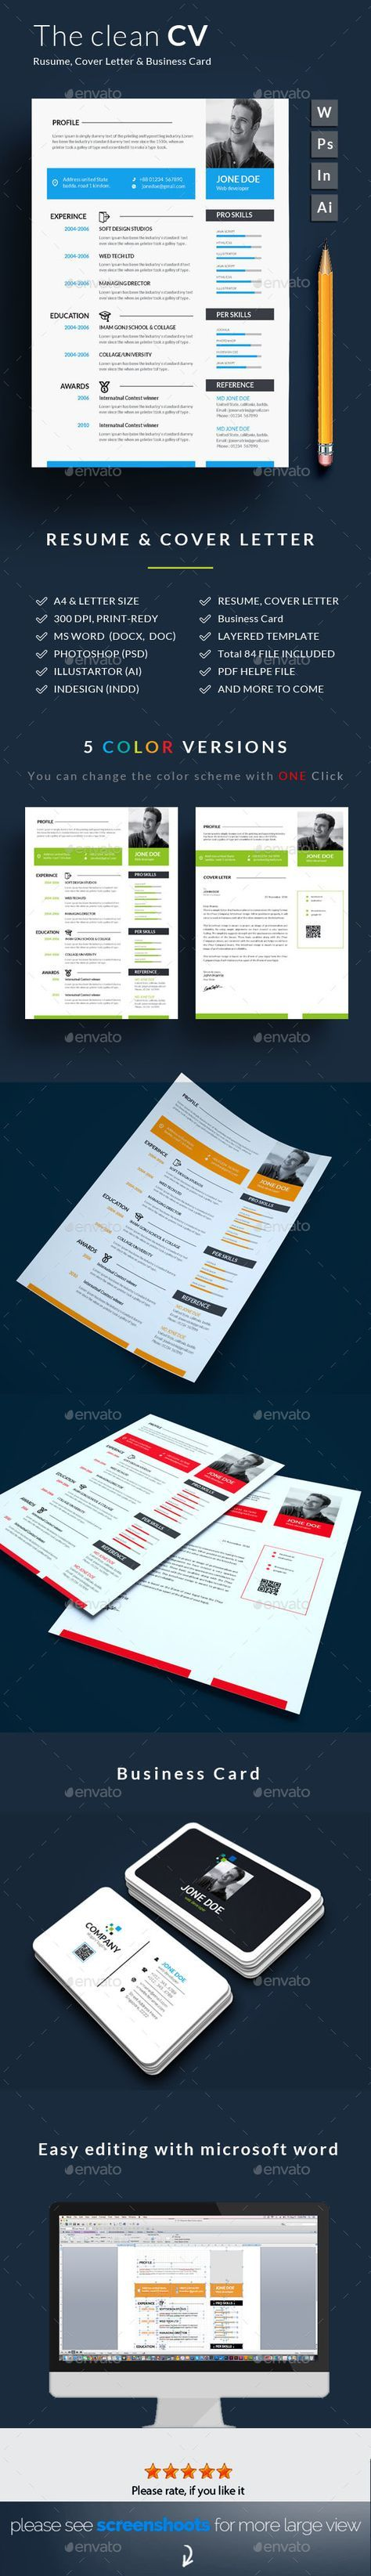 Clean Resume/CV Template PSD, InDesign INDD, AI Illustrator, MS Word ...